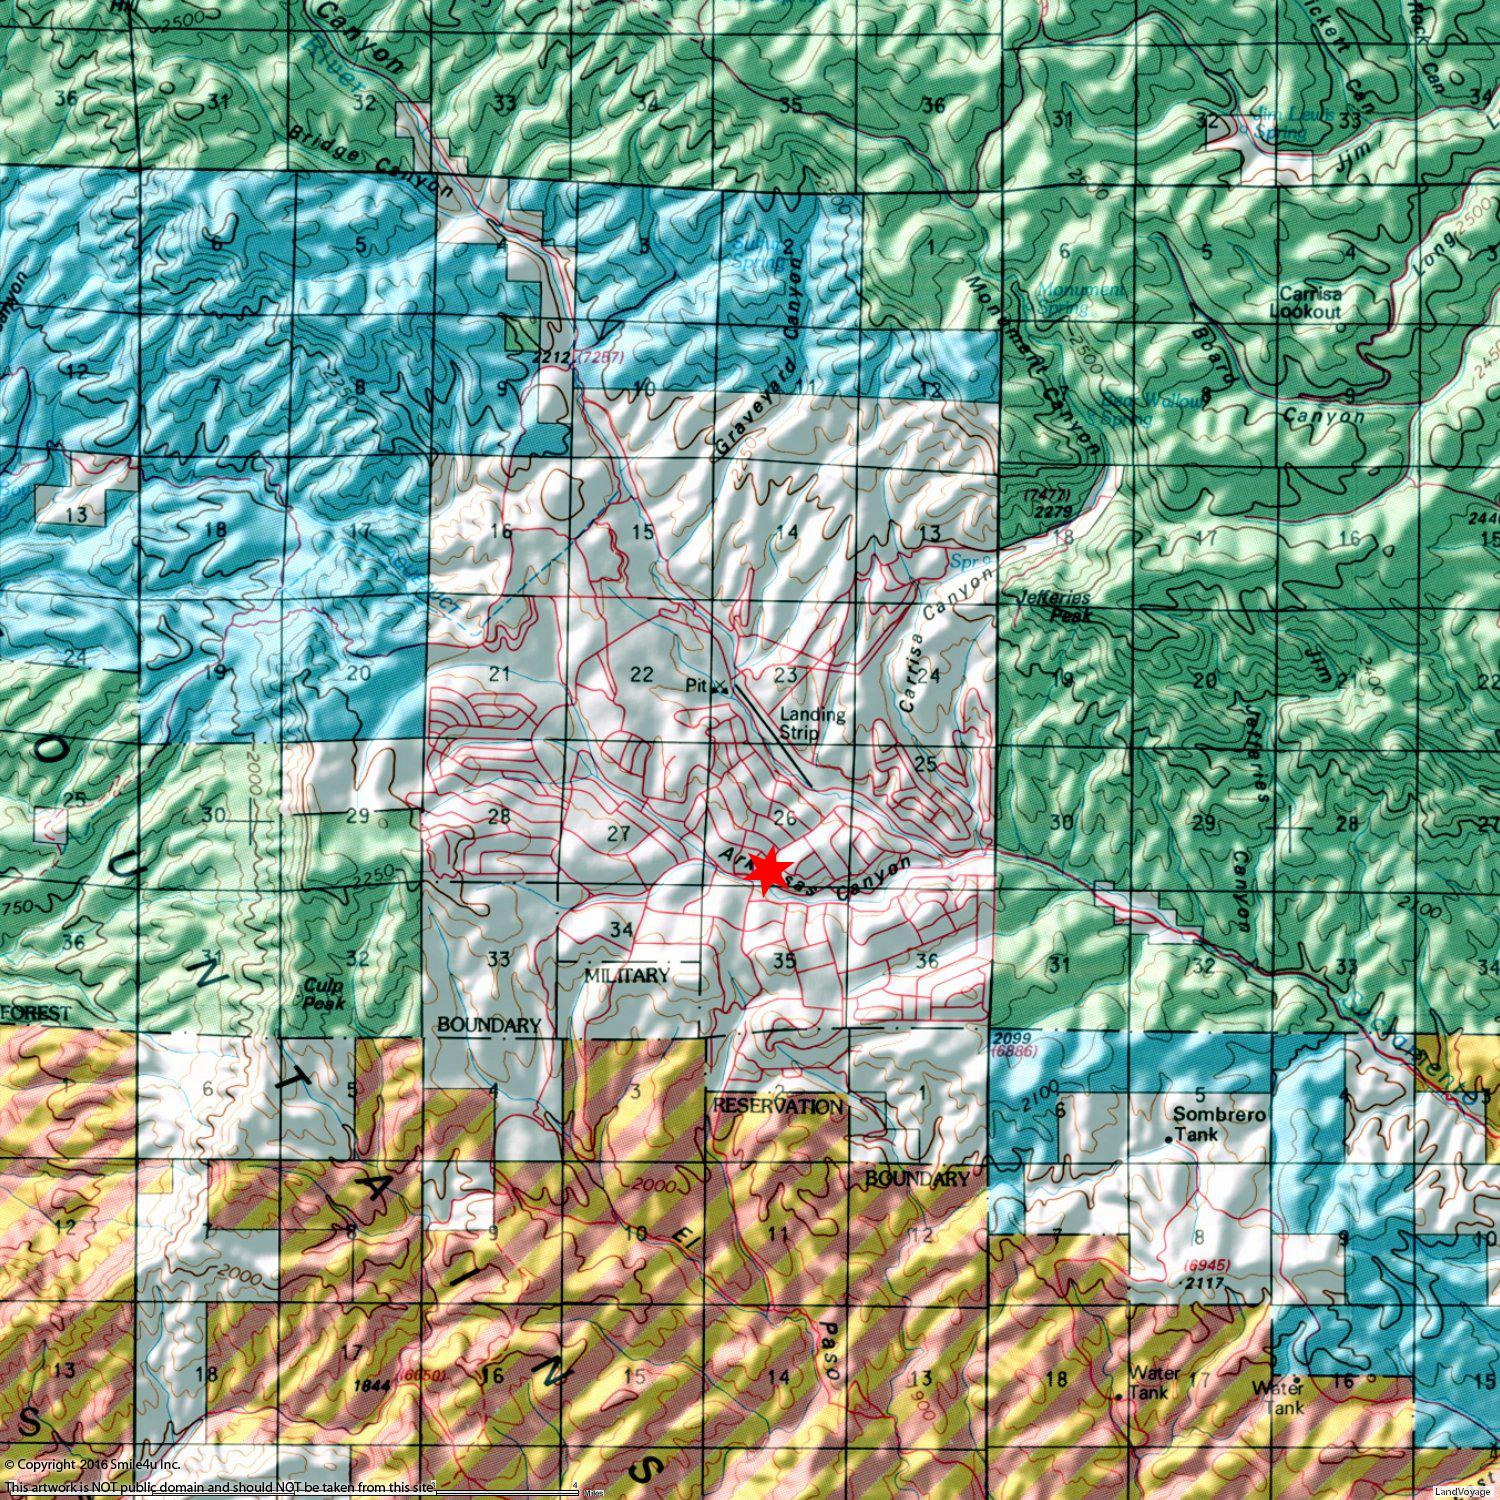 512729_watermarked_Timberon BLM Map.jpg